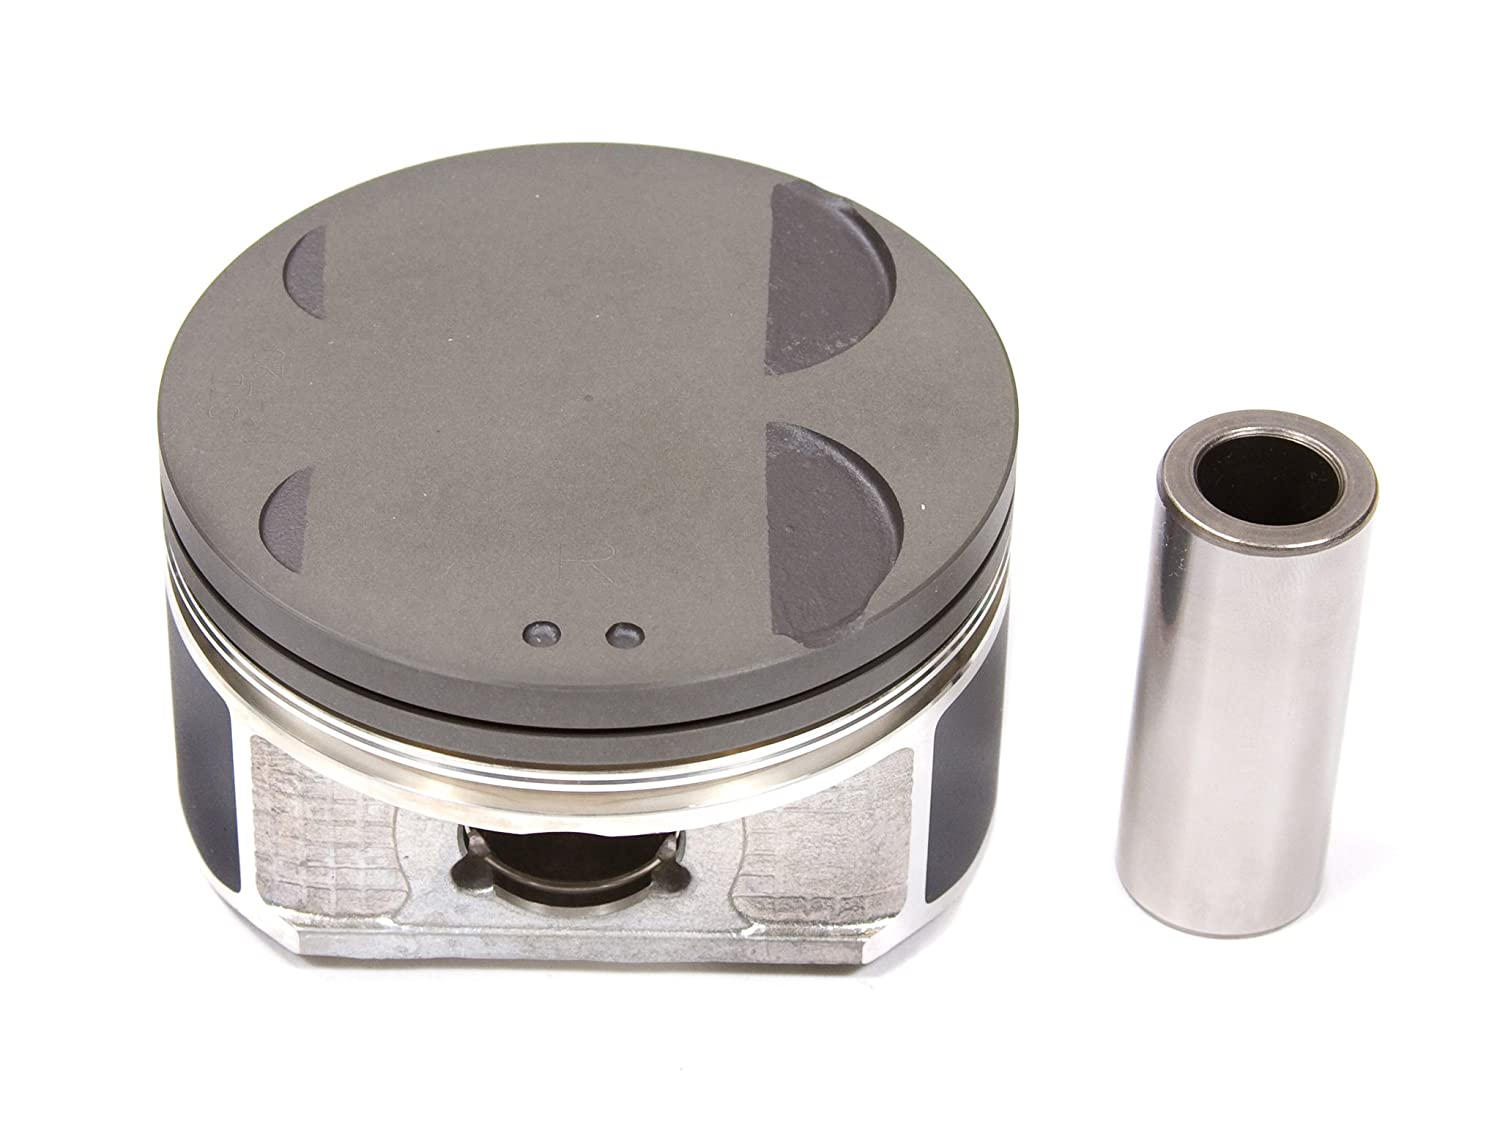 Evergreen PA22033.50 Fits 94-99 Toyota Lexus 3.0L 1MZFE DOHC 24V Engine Piston Set Oversize 0.50mm = 0.020